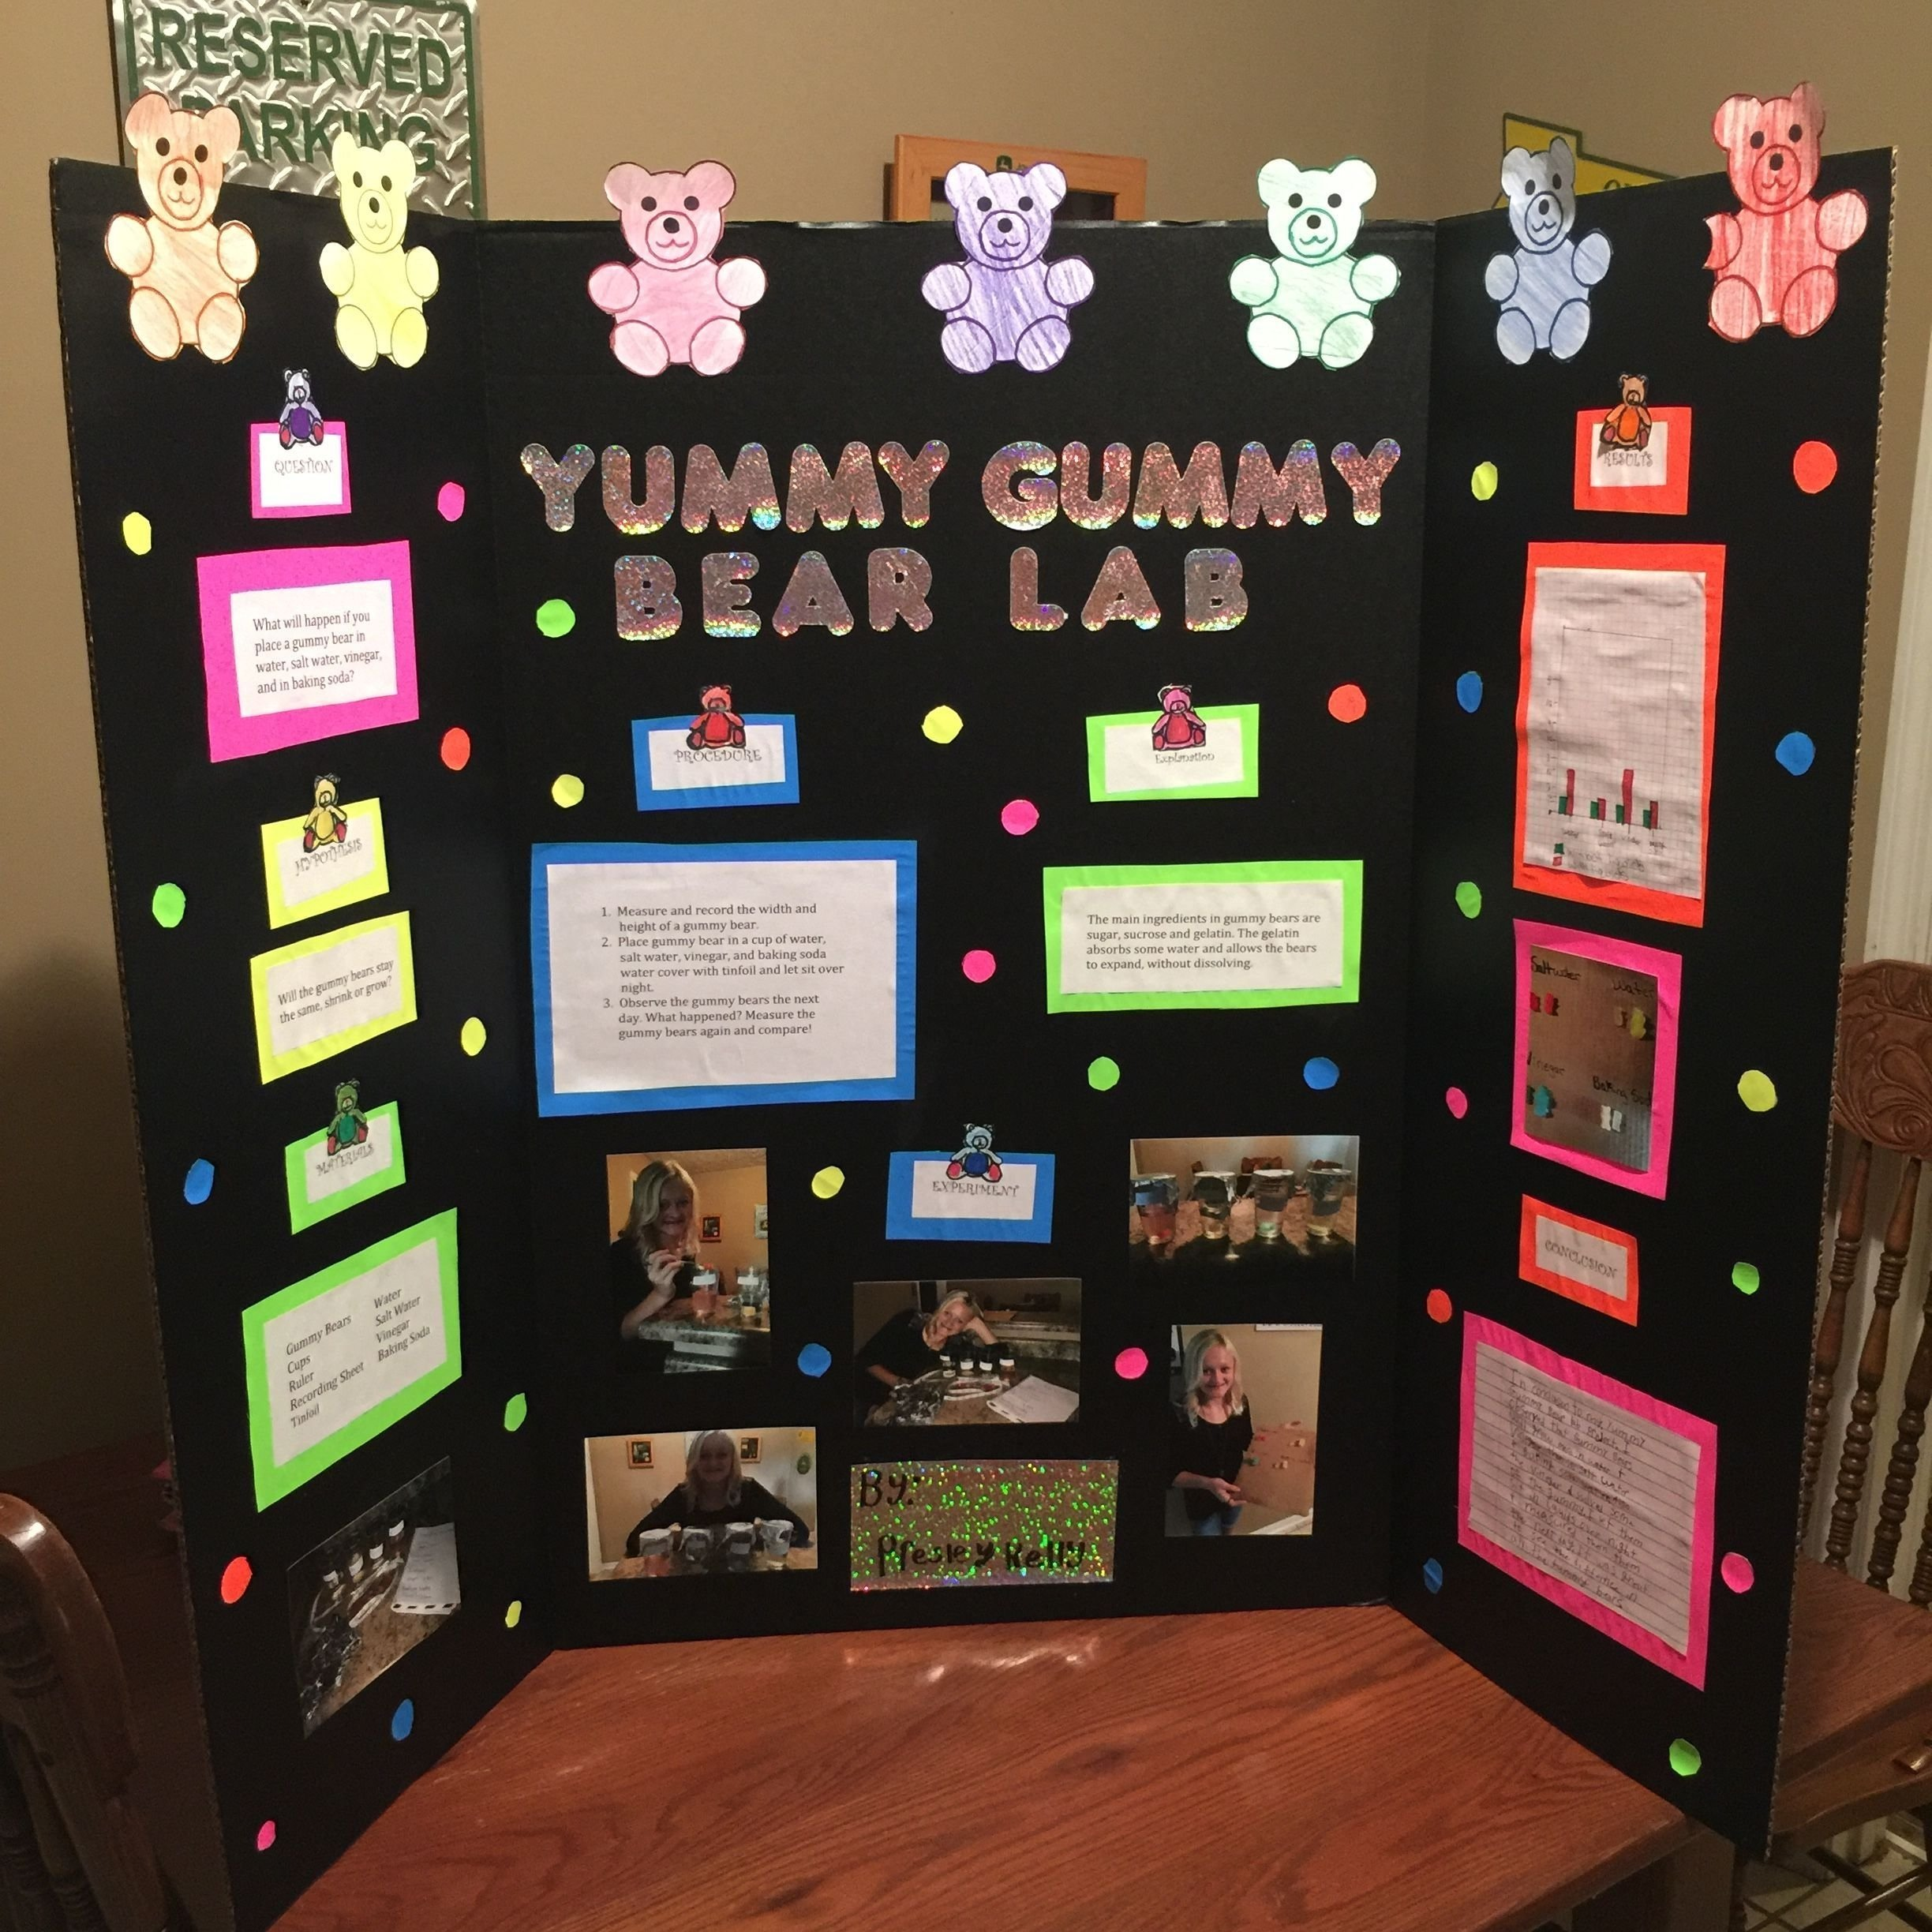 10 Most Popular Ideas For Science Fair Projects For 4Th Graders our 4th grade science fair project yummy gummy bear lab lots of 3 2020